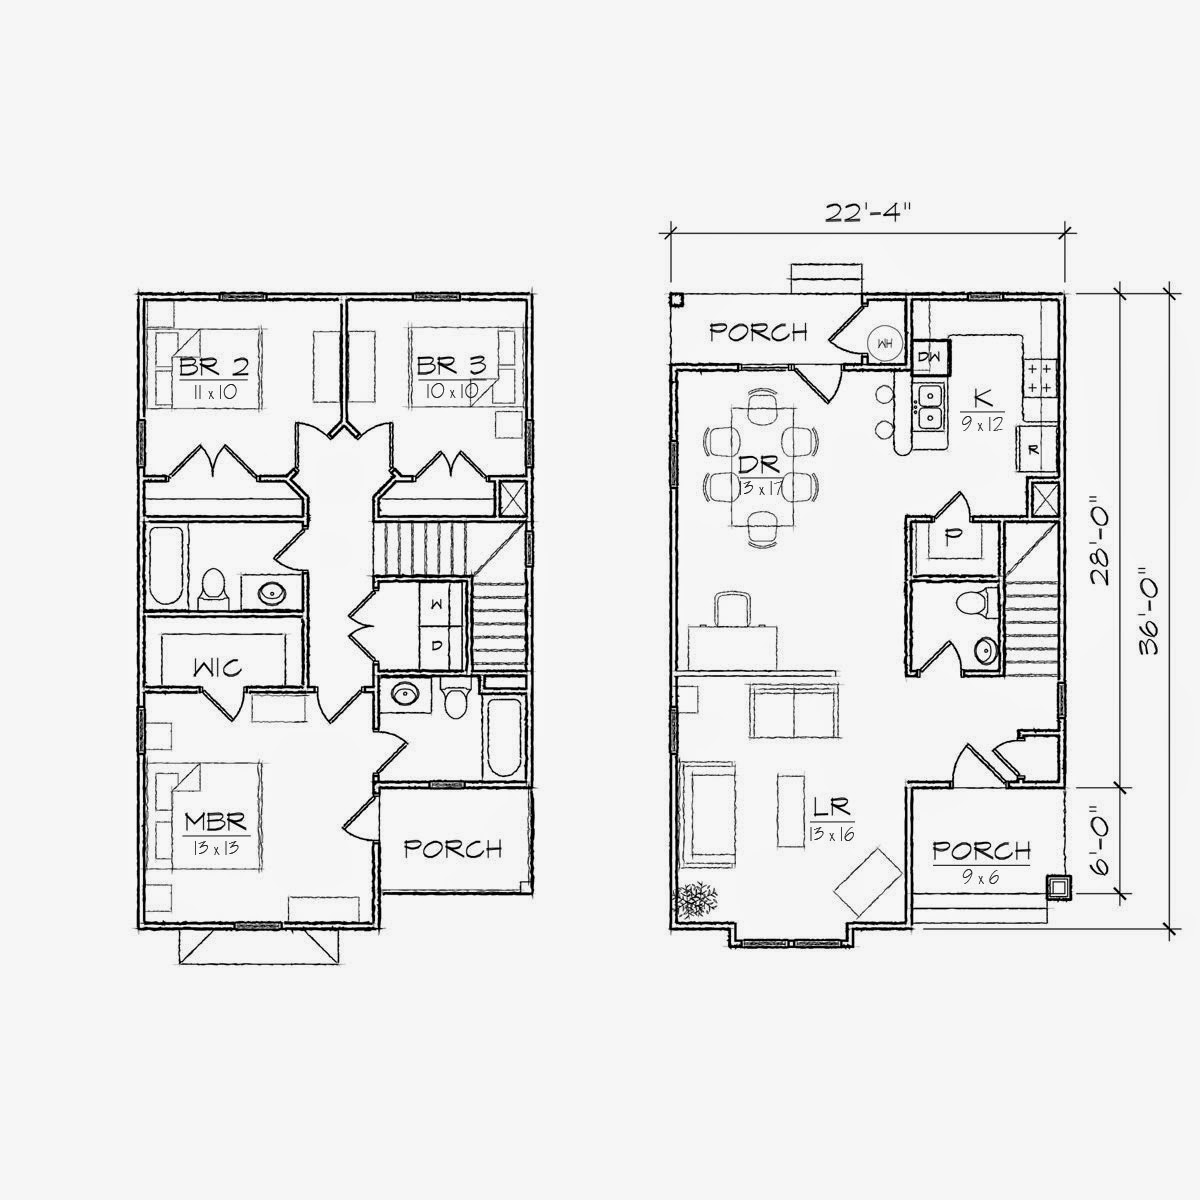 1000 sq ft loft lake house plans joy studio design for Small house floor plans with loft